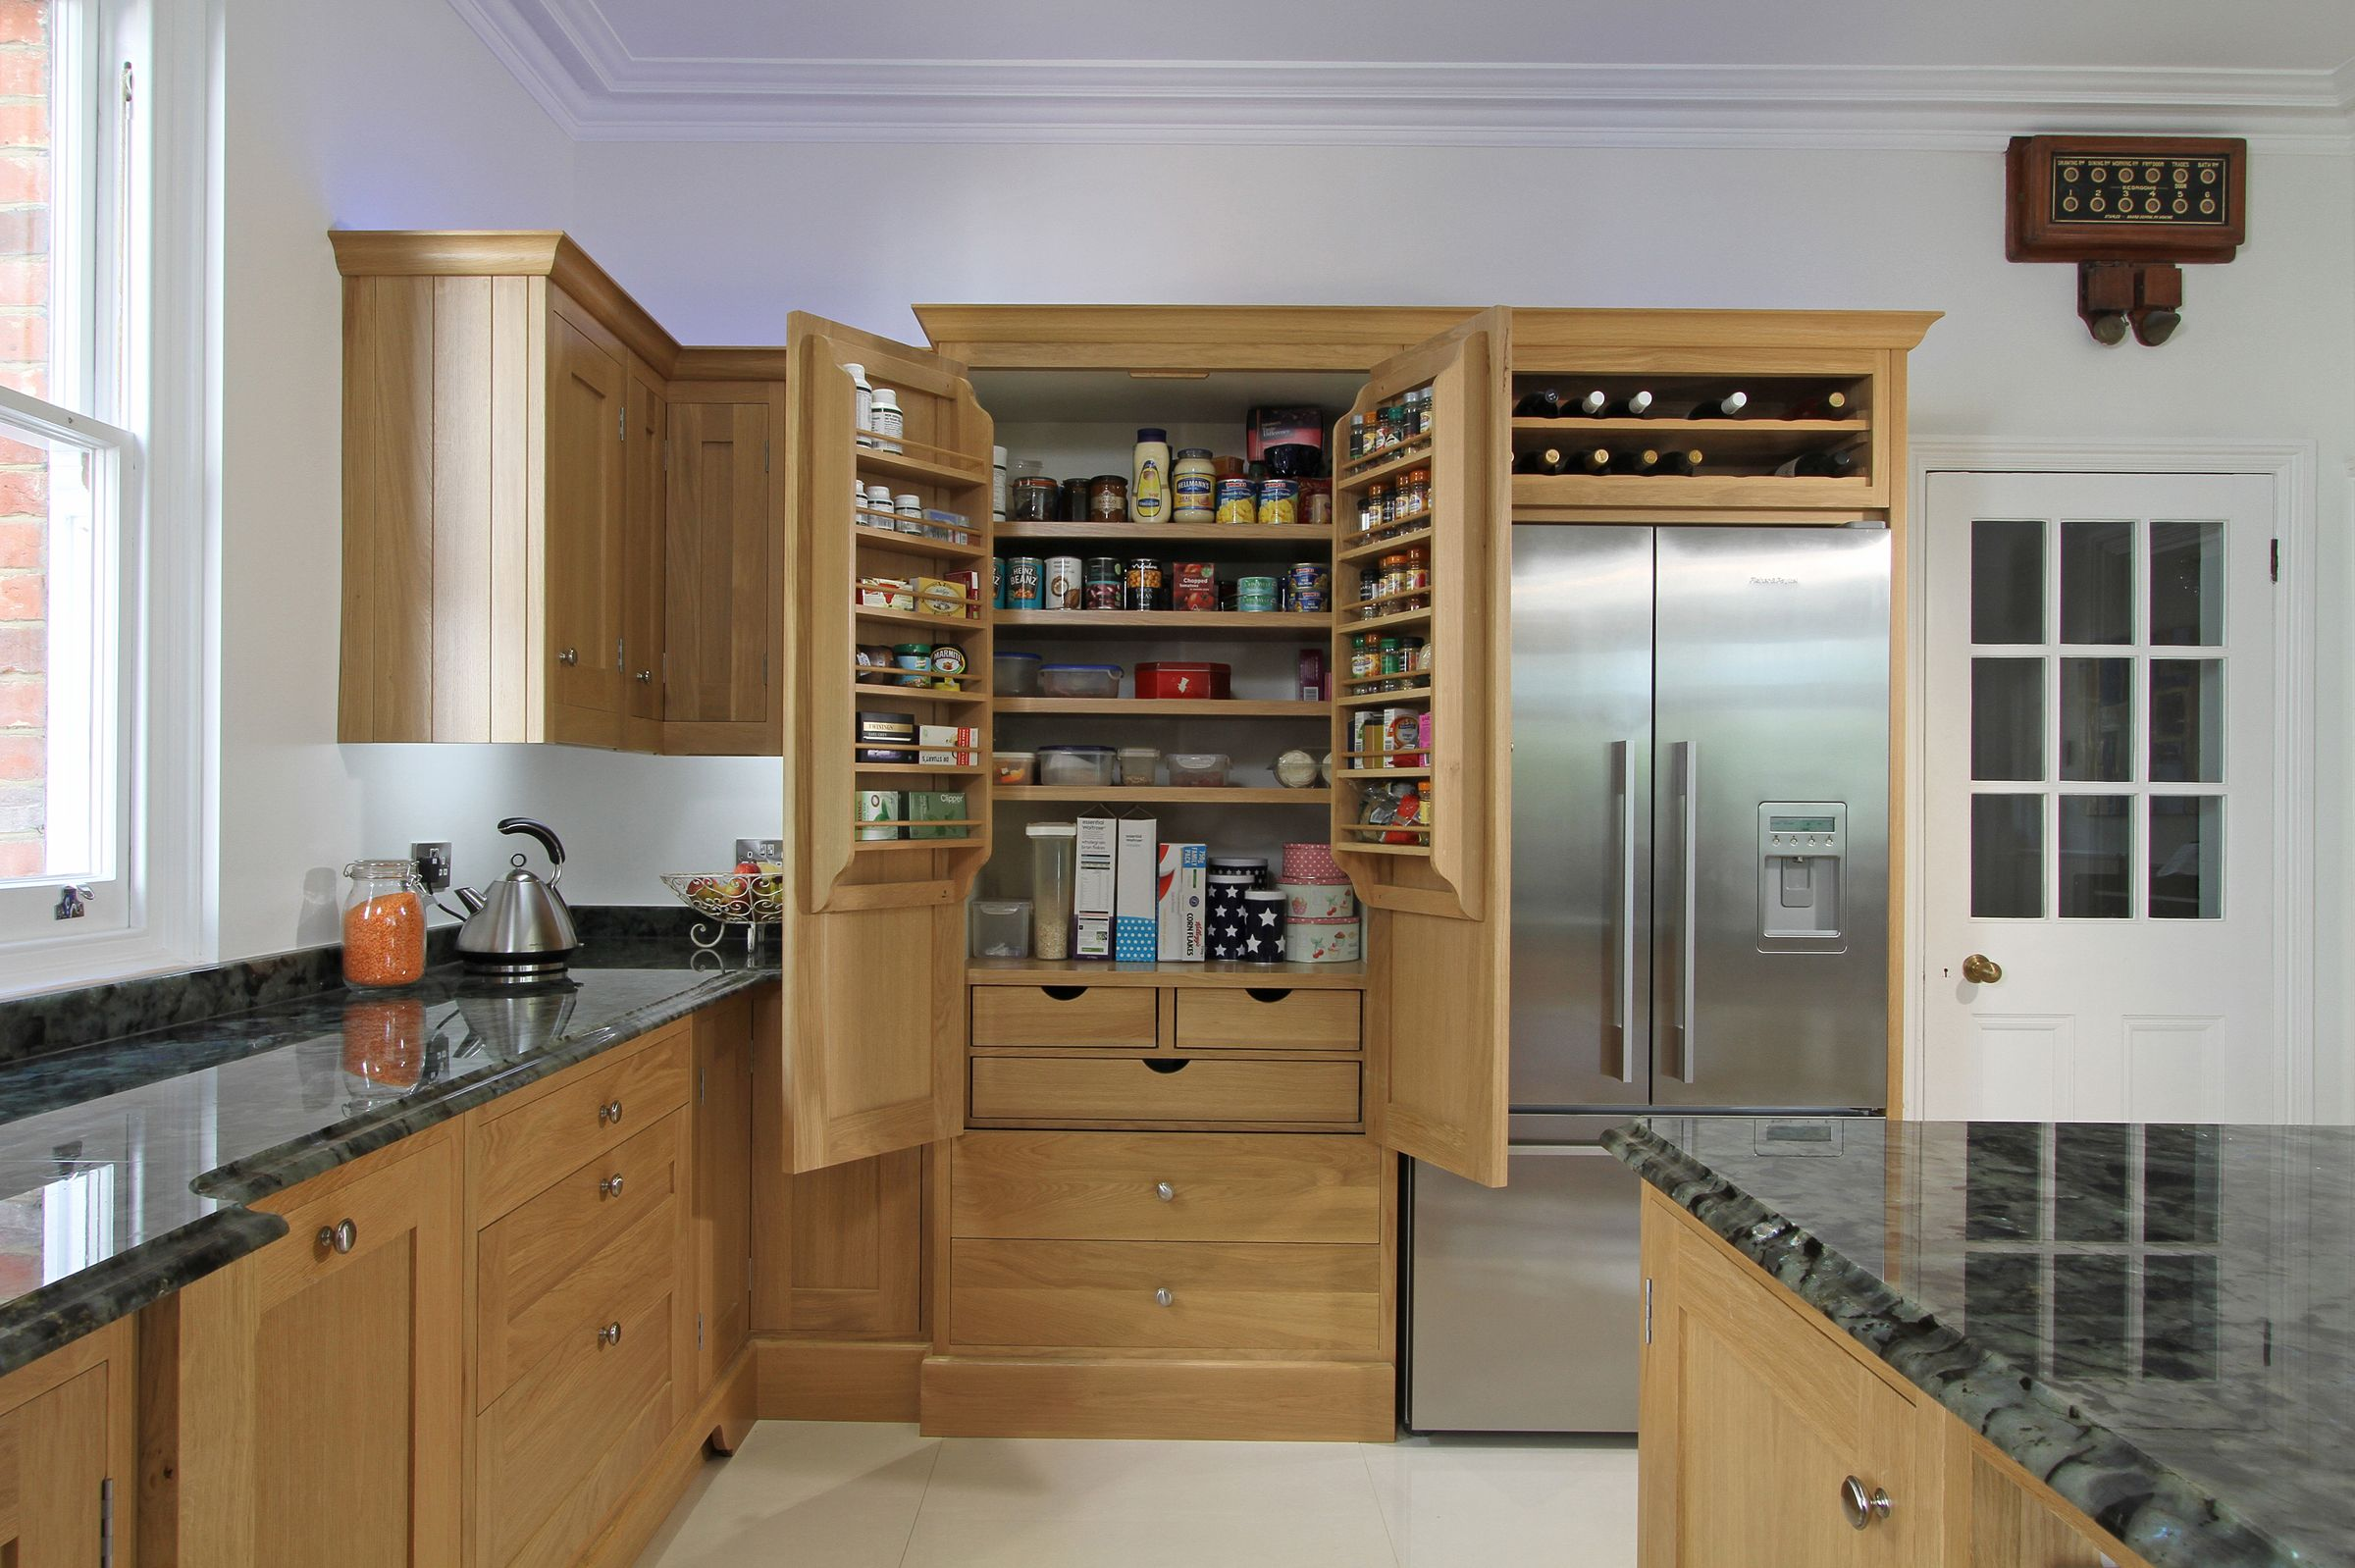 Here you can see a bespoke pantry